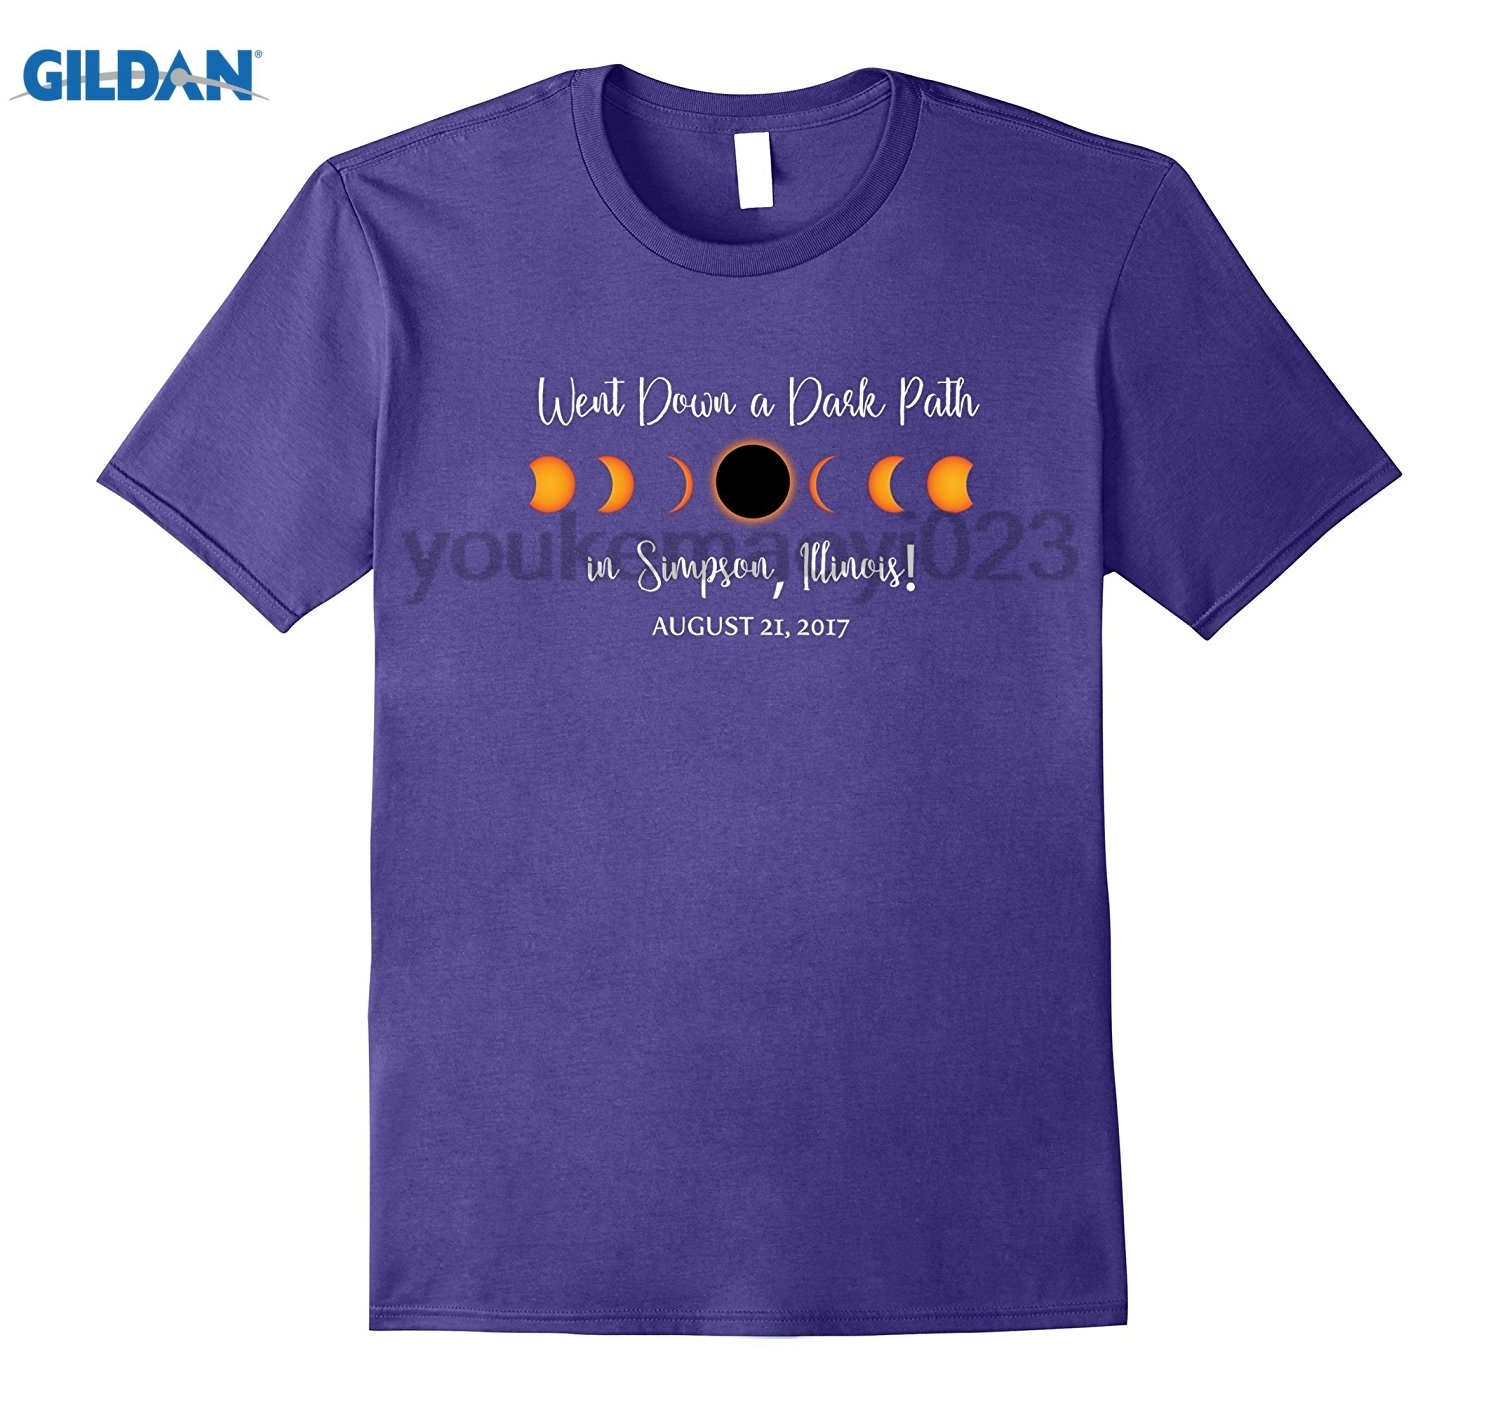 GILDAN Simpson, Illinois 2017 Solar Eclipse TShirt, T Shirt, Tee